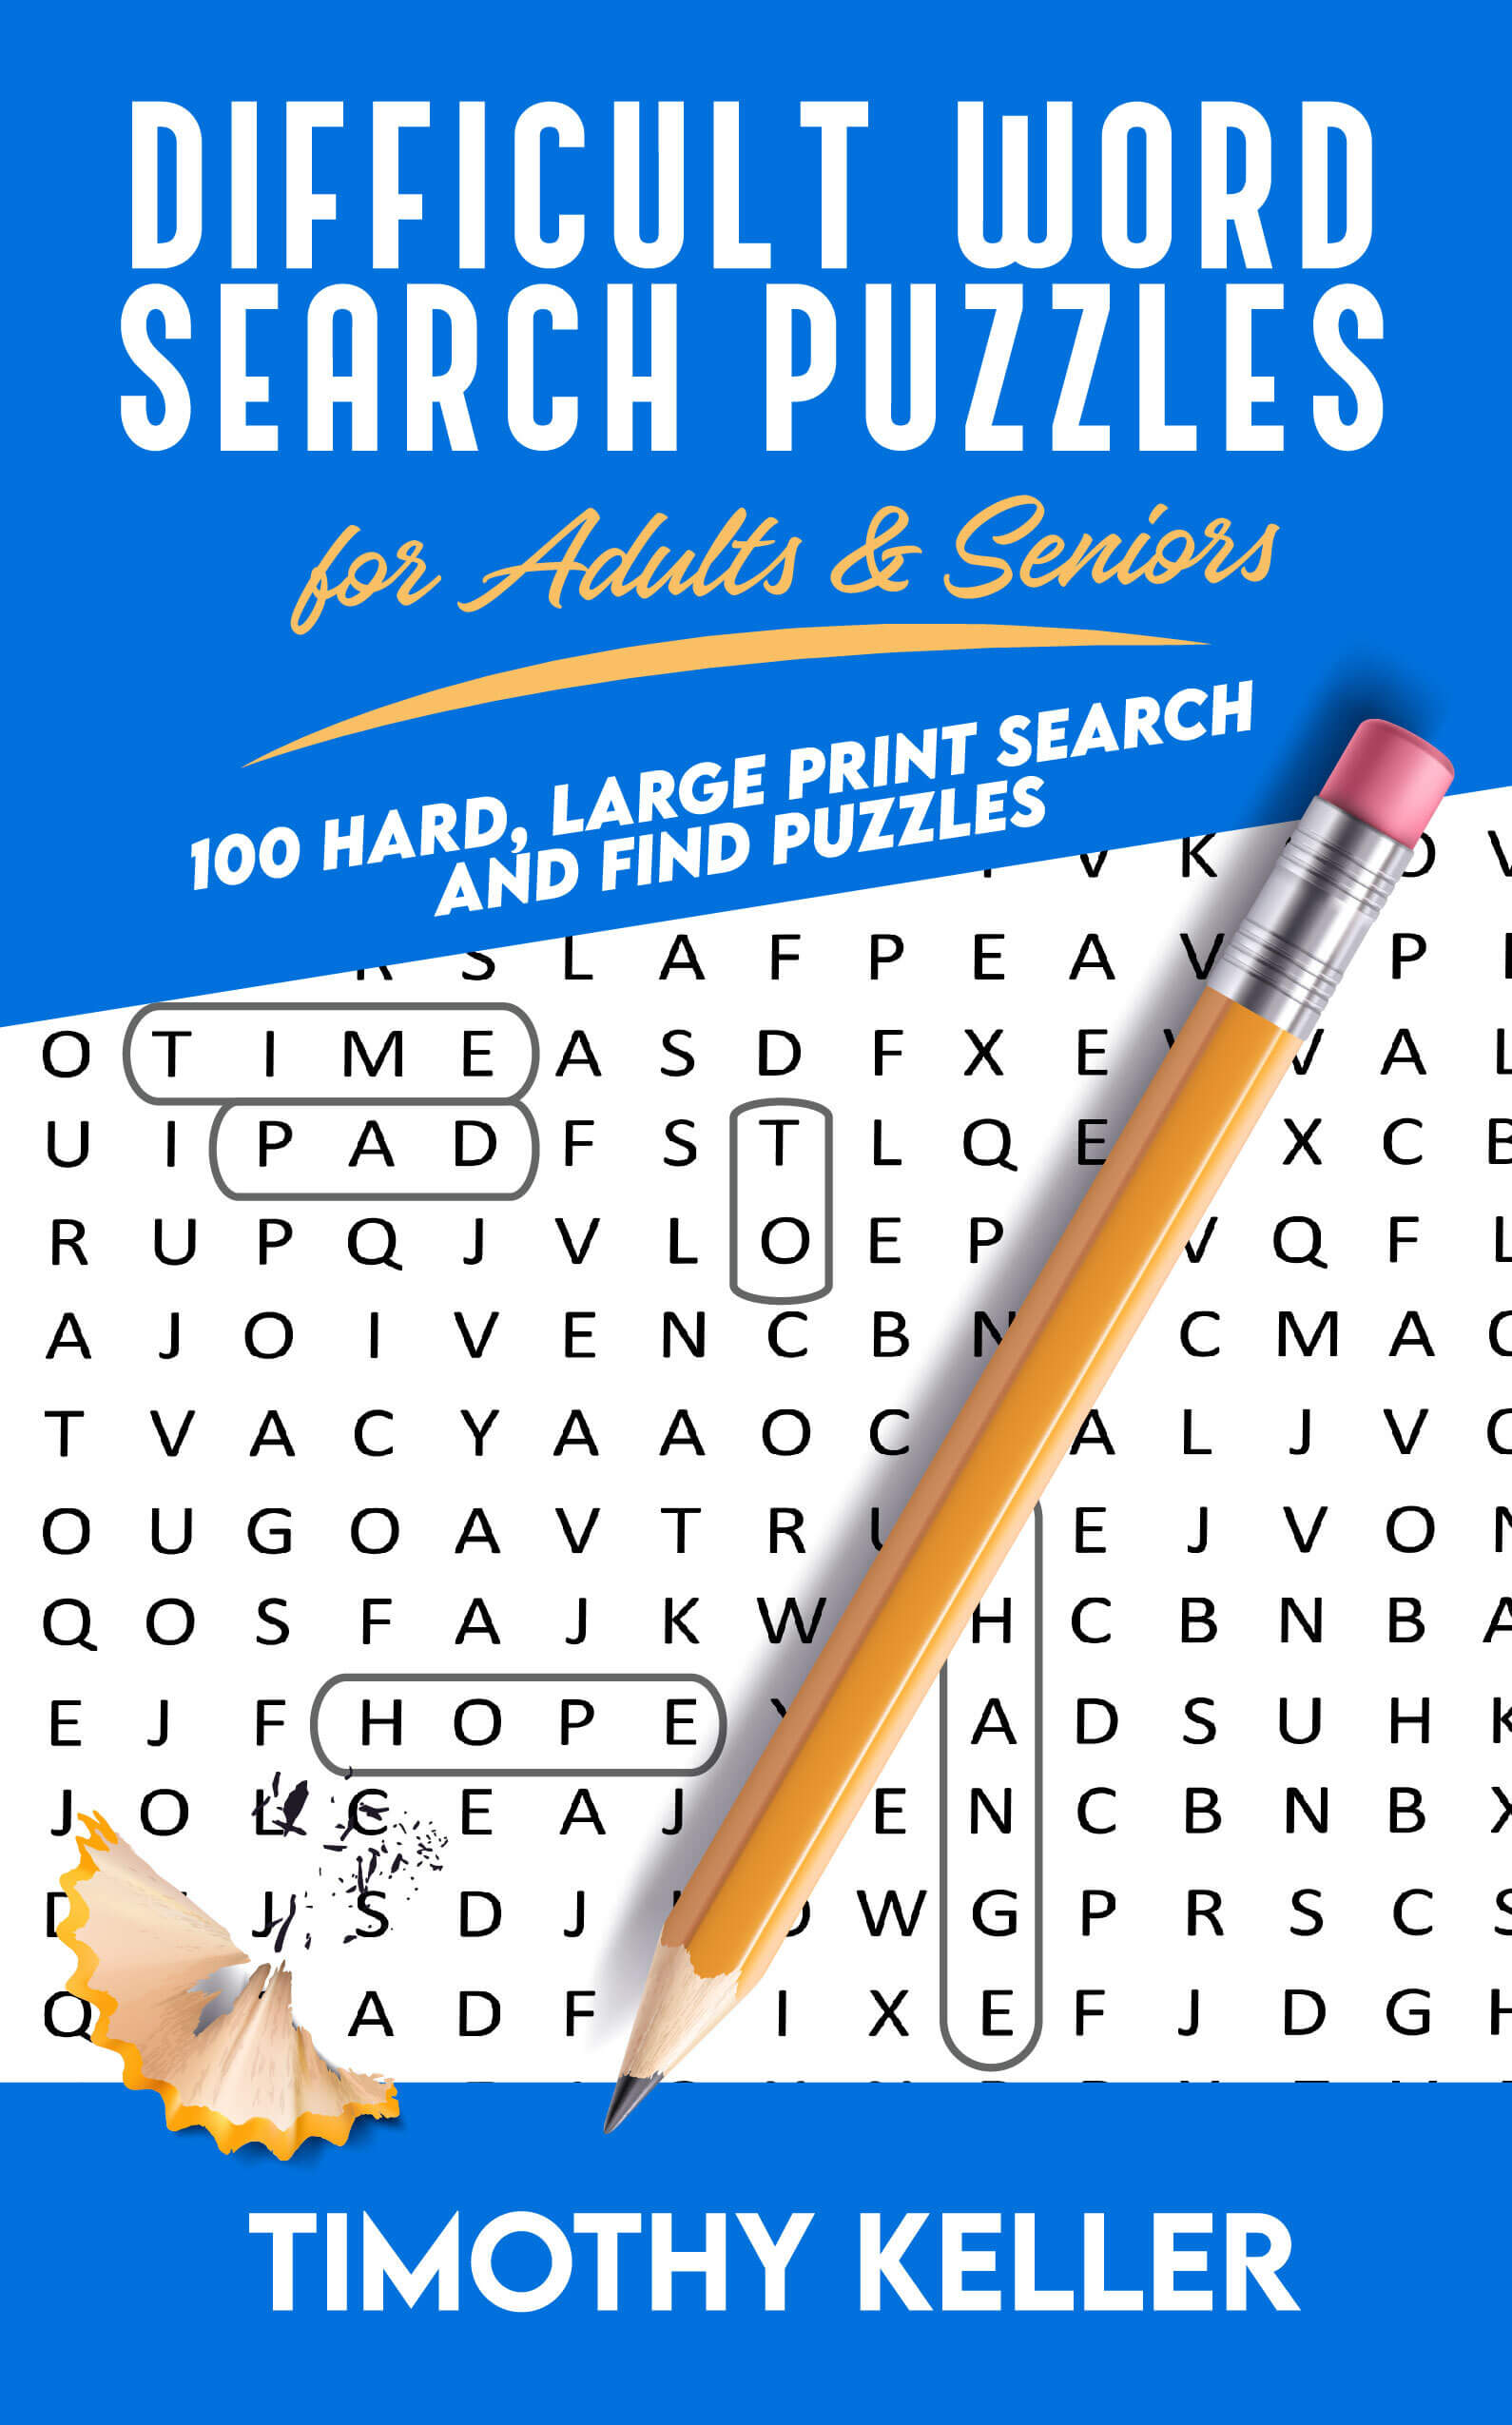 Difficult Word Search Puzzles for Adults & Seniors -01SMALL